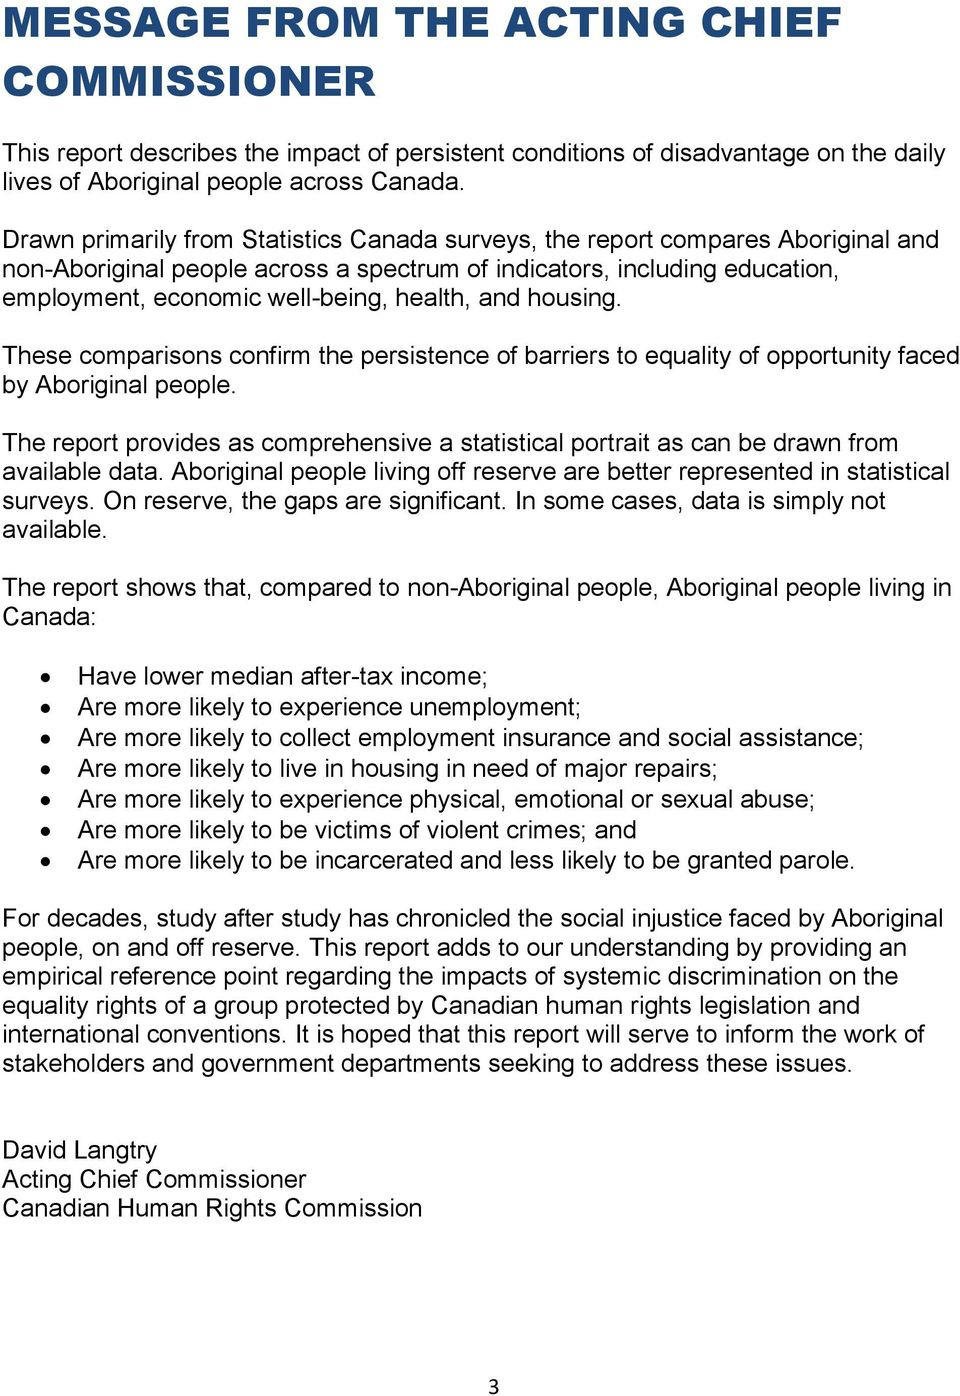 and housing. These comparisons confirm the persistence of barriers to equality of opportunity faced by Aboriginal people.